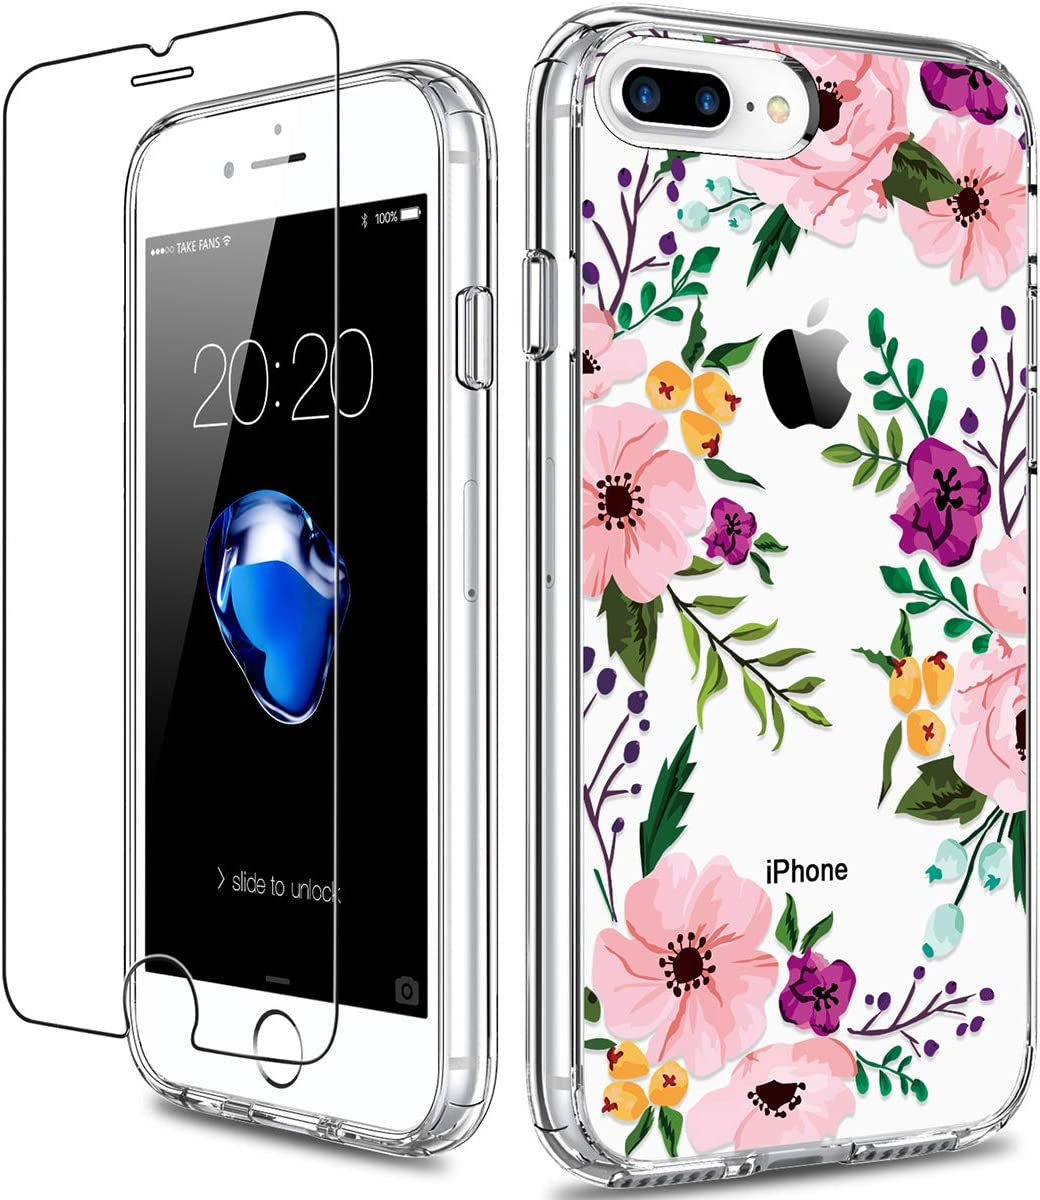 GiiKa iPhone 8 Plus Case, iPhone 7 Plus Case with Screen Protector, Clear Heavy Duty Protective Case Floral Girls Women Hard PC Case with TPU Bumper Cover Phone Case for iPhone 8 Plus, Small Flowers